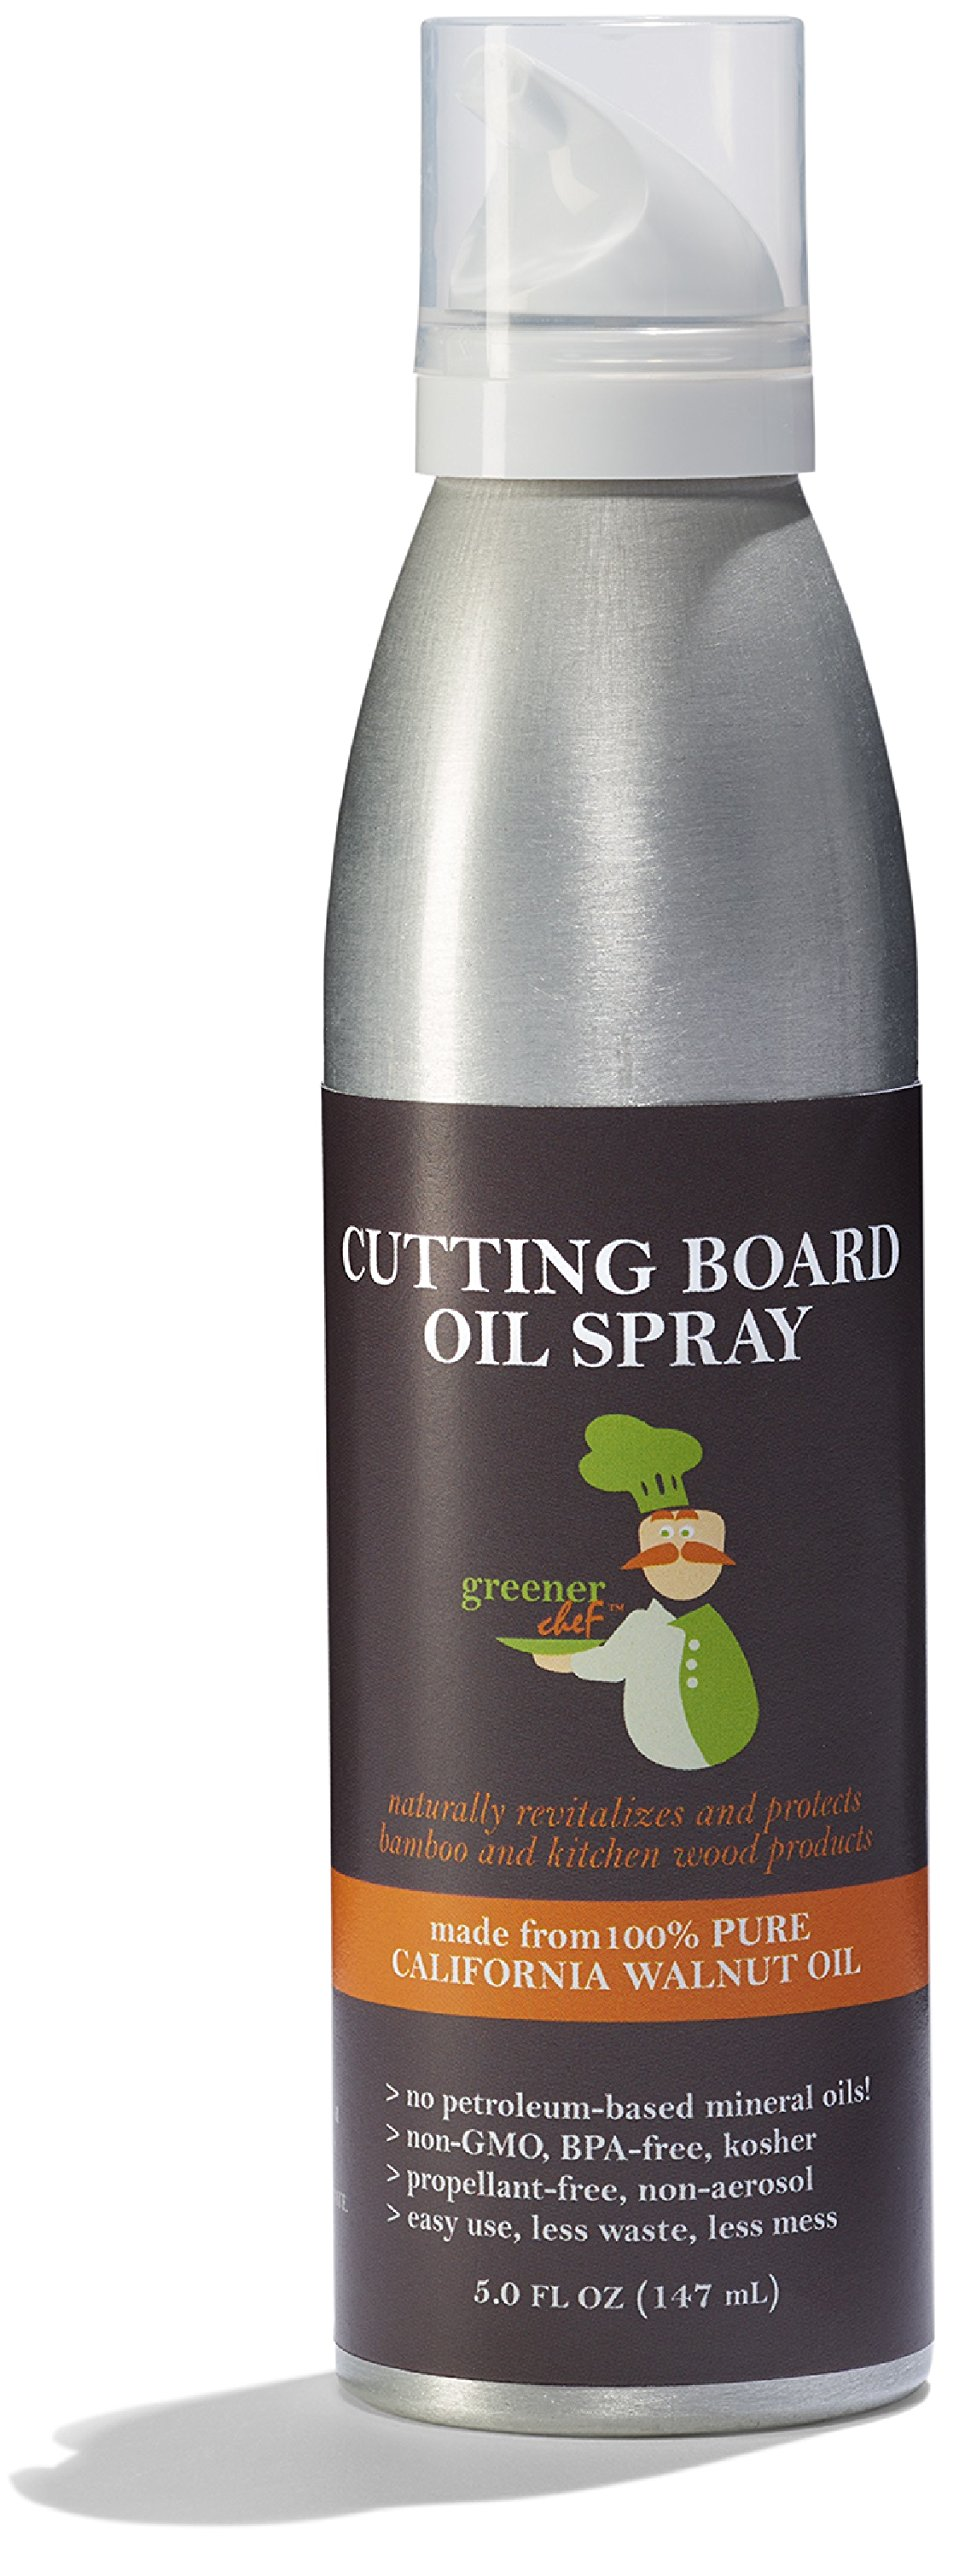 Food Grade Cutting Board Oil Spray and Wood Furniture Polish - Mineral Oil Free Butcher Block Oil and Conditioner - Made from 100% All Natural Walnut Oil - Unique Spray for No Mess and Low Waste